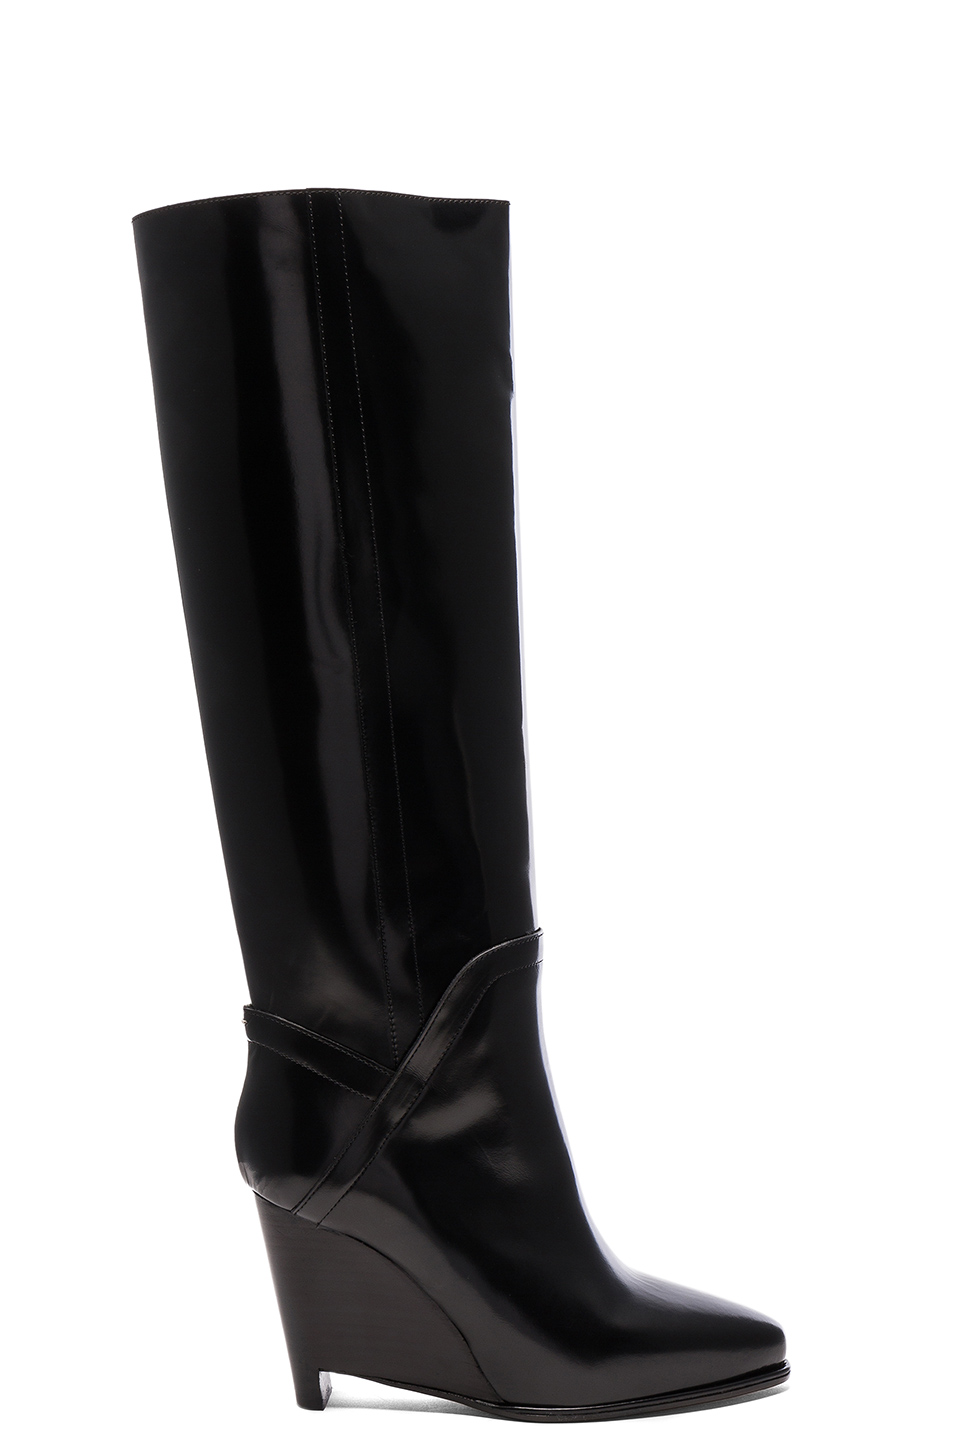 Maison Margiela Leather Boots in Black